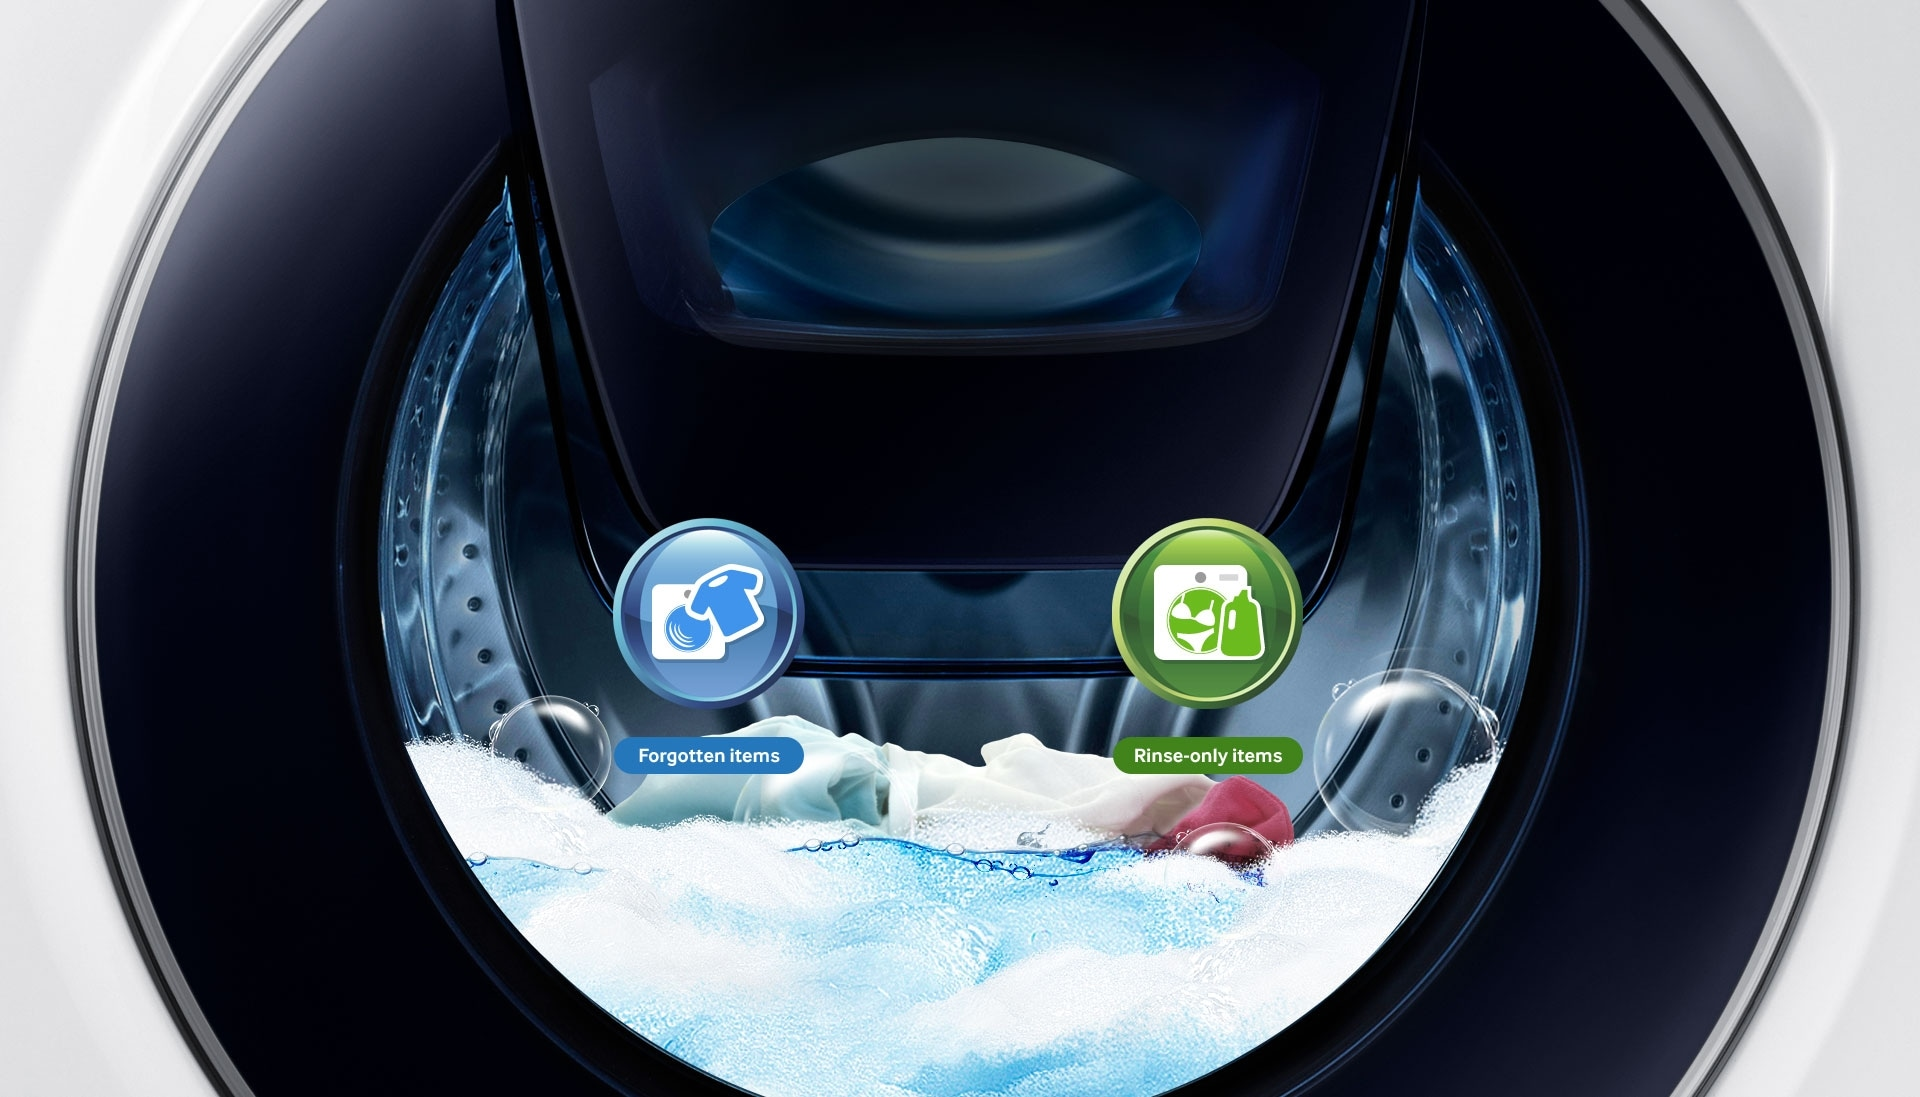 An image showing the WW6500's drum, as well as icons representing items the user has forgotten to add to the wash, and rinse-only items and fabric softener – all of which can be added via the Add Door.